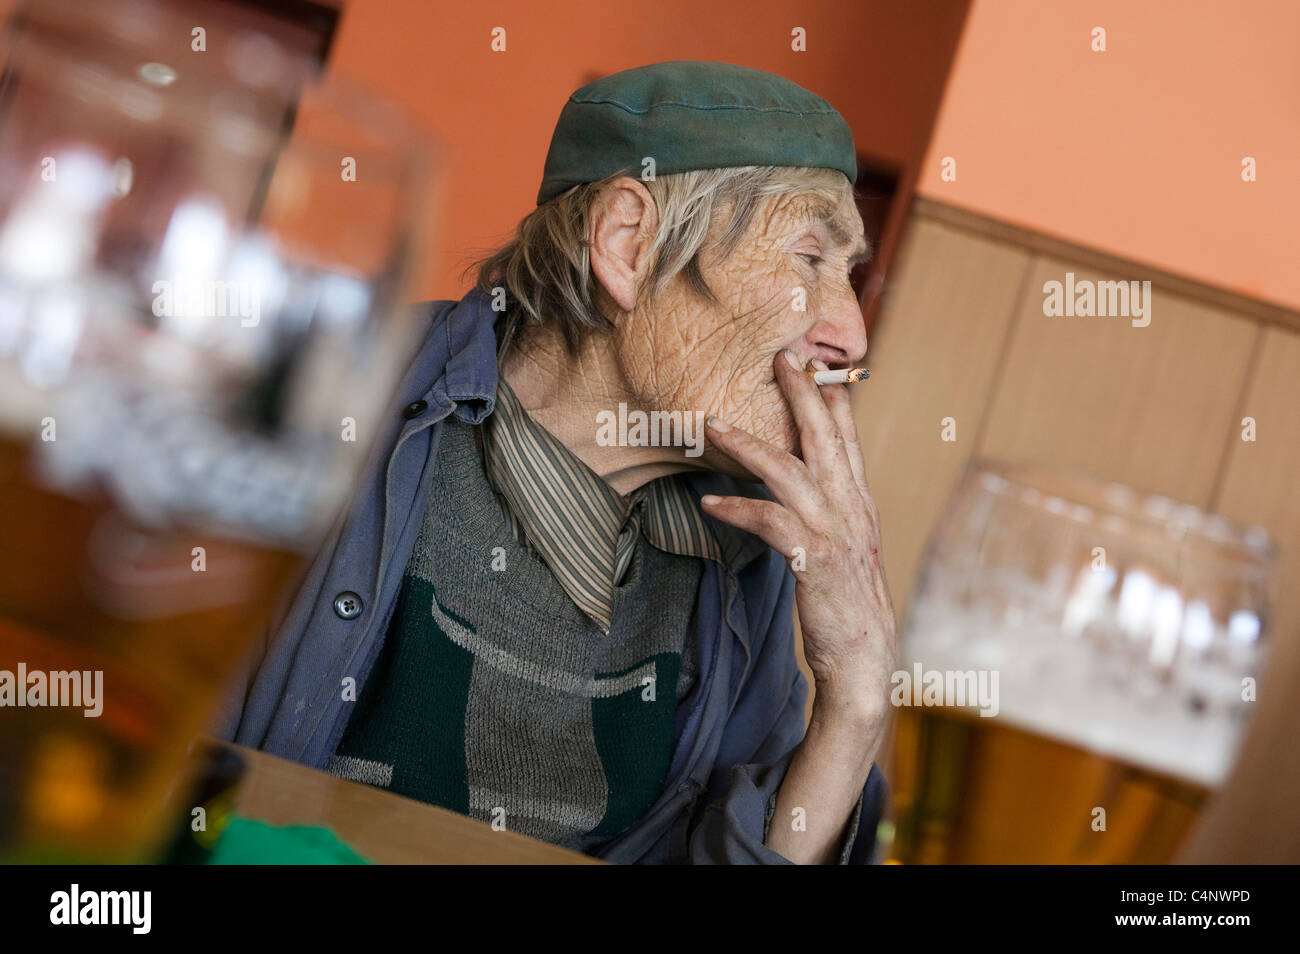 A man having a beer and cigarette in a pub in slovakia - Stock Image